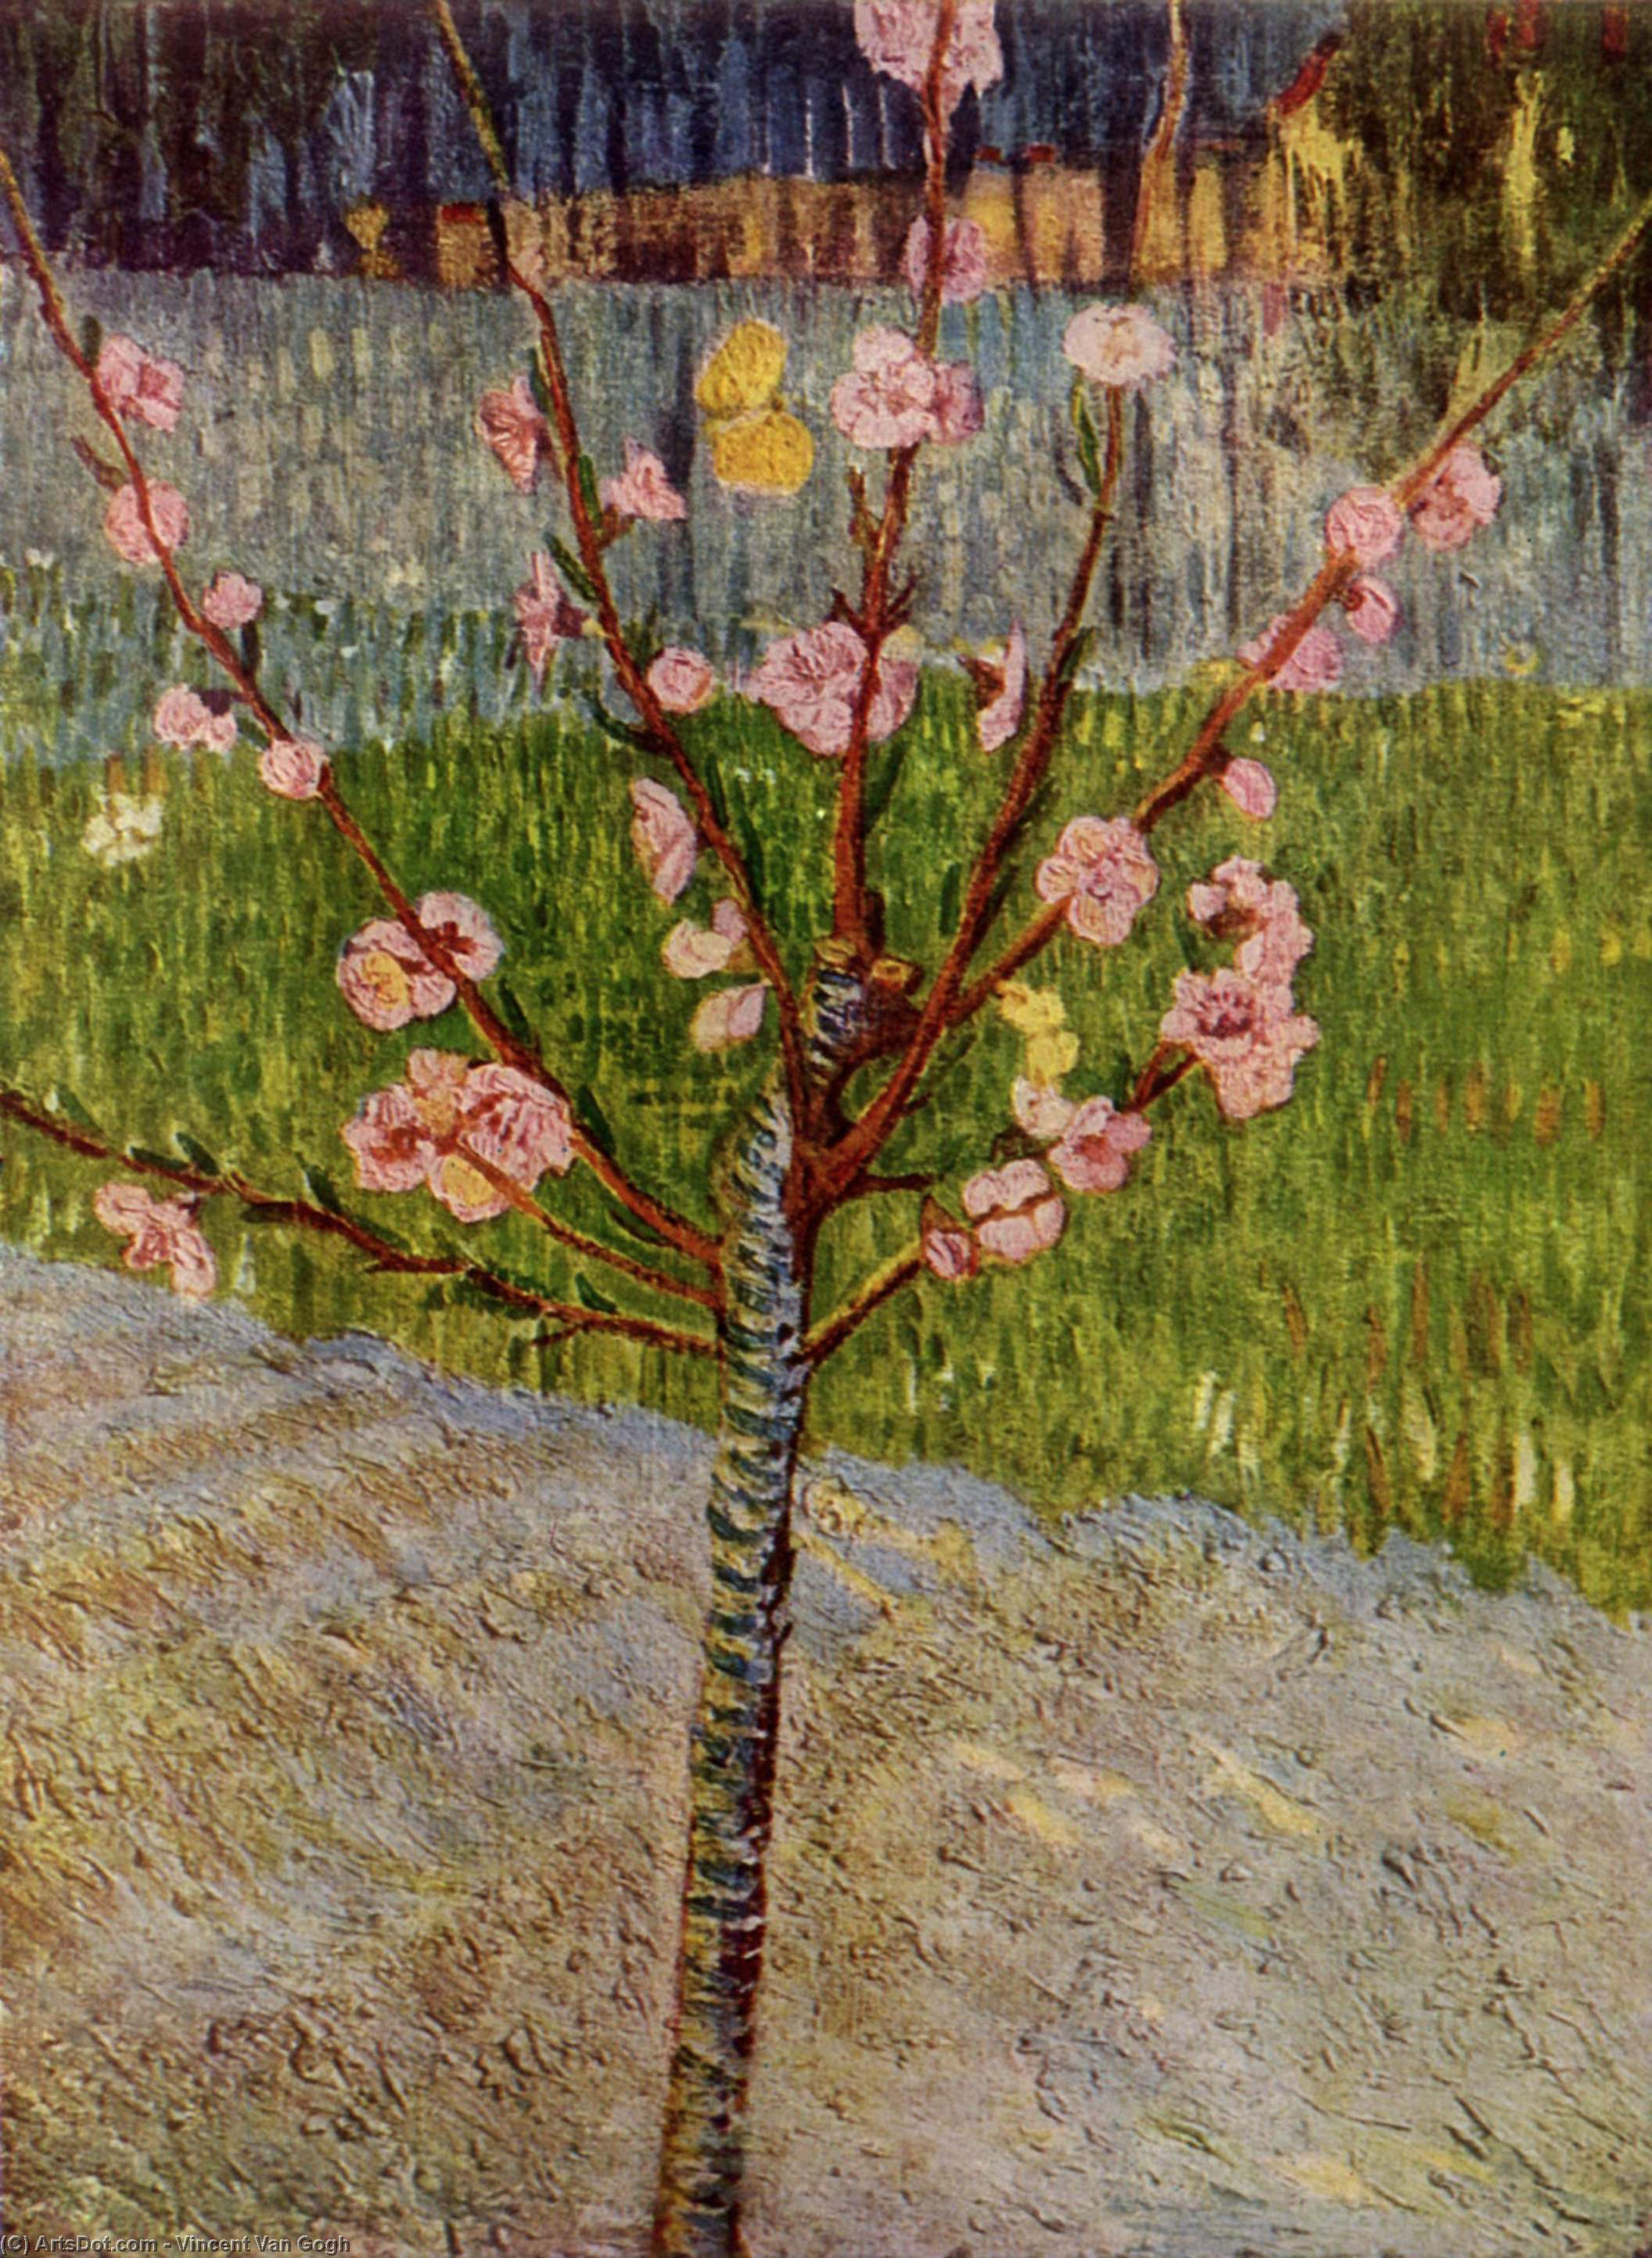 Wikioo.org - The Encyclopedia of Fine Arts - Painting, Artwork by Vincent Van Gogh - Almond Tree in Blossom